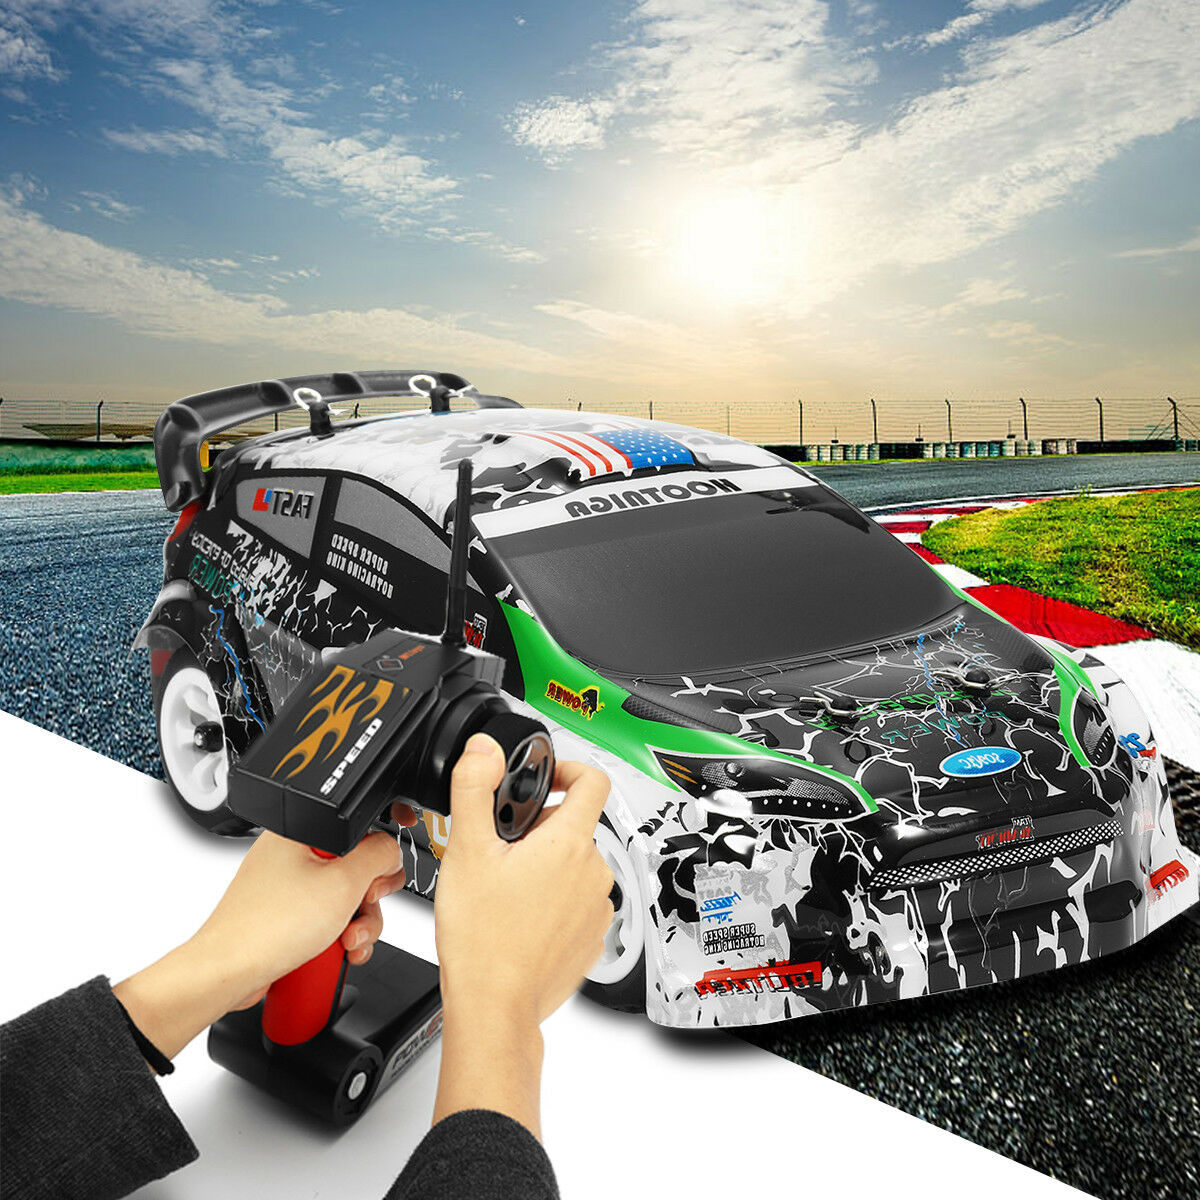 Details about Wltoys K989 1/28 2 4G 4WD Brushed RC Drift Car High Speed  Radio Control Car Toy